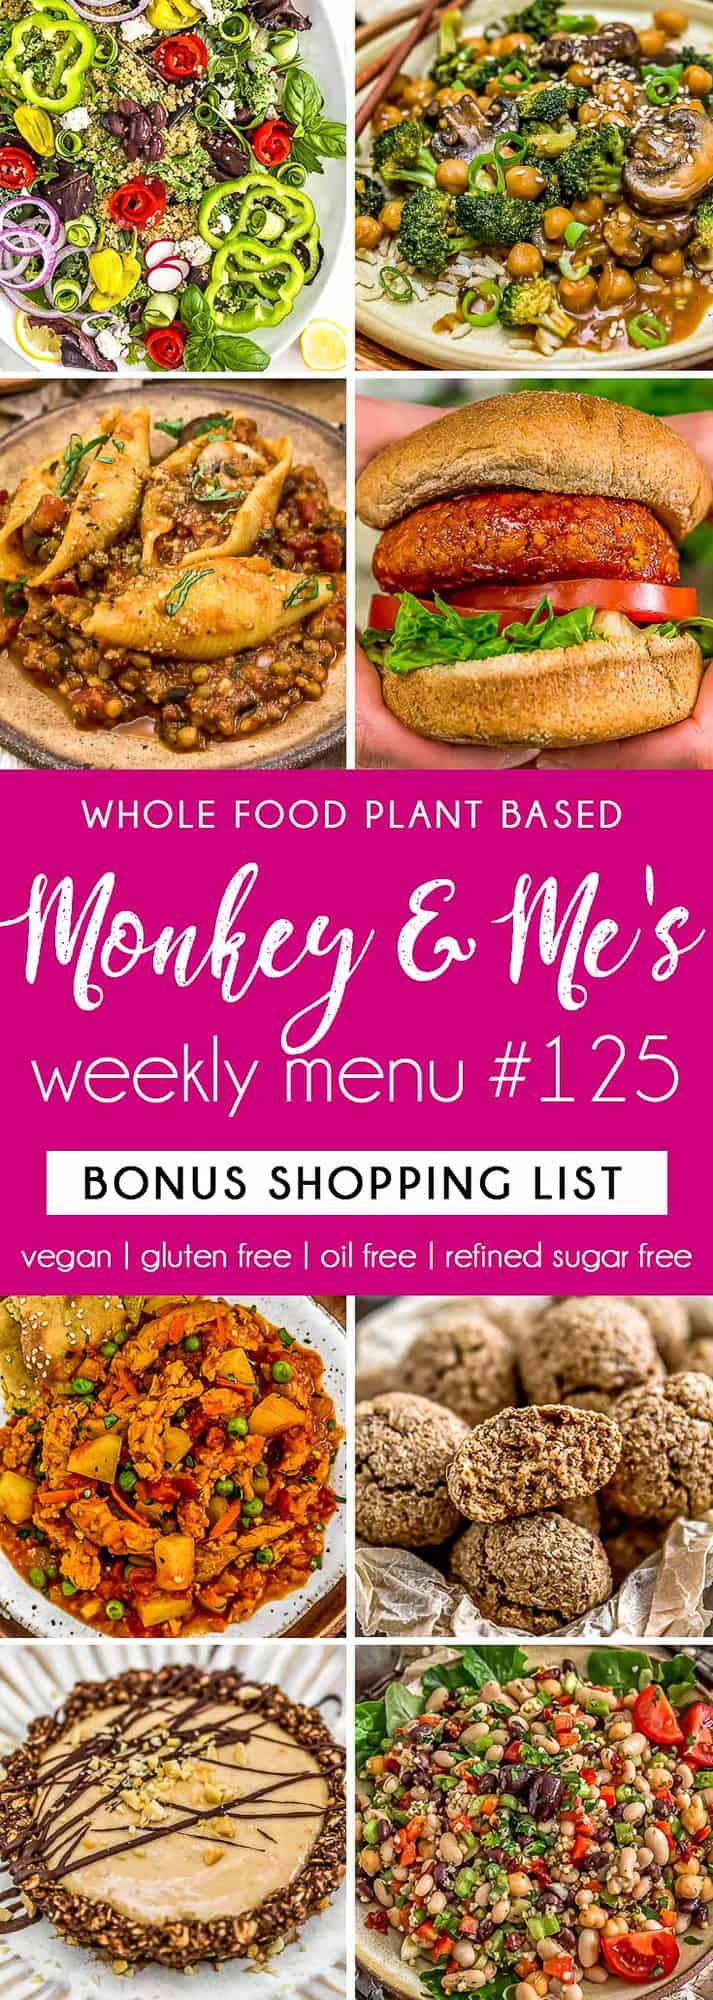 Monkey and Me's Menu 125 featuring 8 recipes